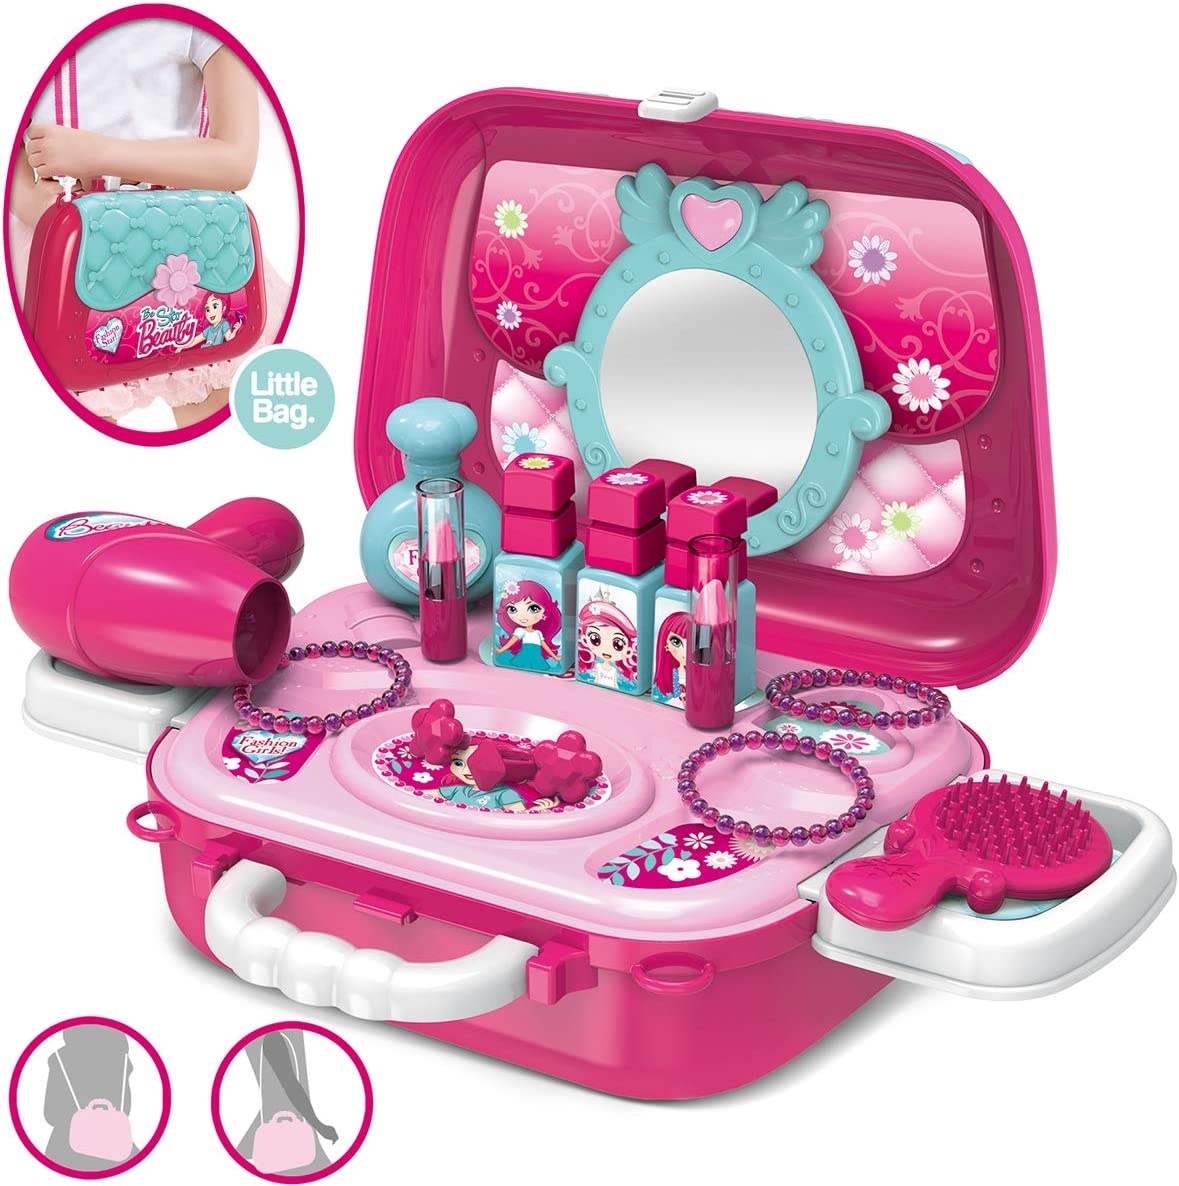 YIMORE Role Financial sales sale Play Jewelry Kit OFFicial mail order for Girls 2 Princess Set in Toy B 1